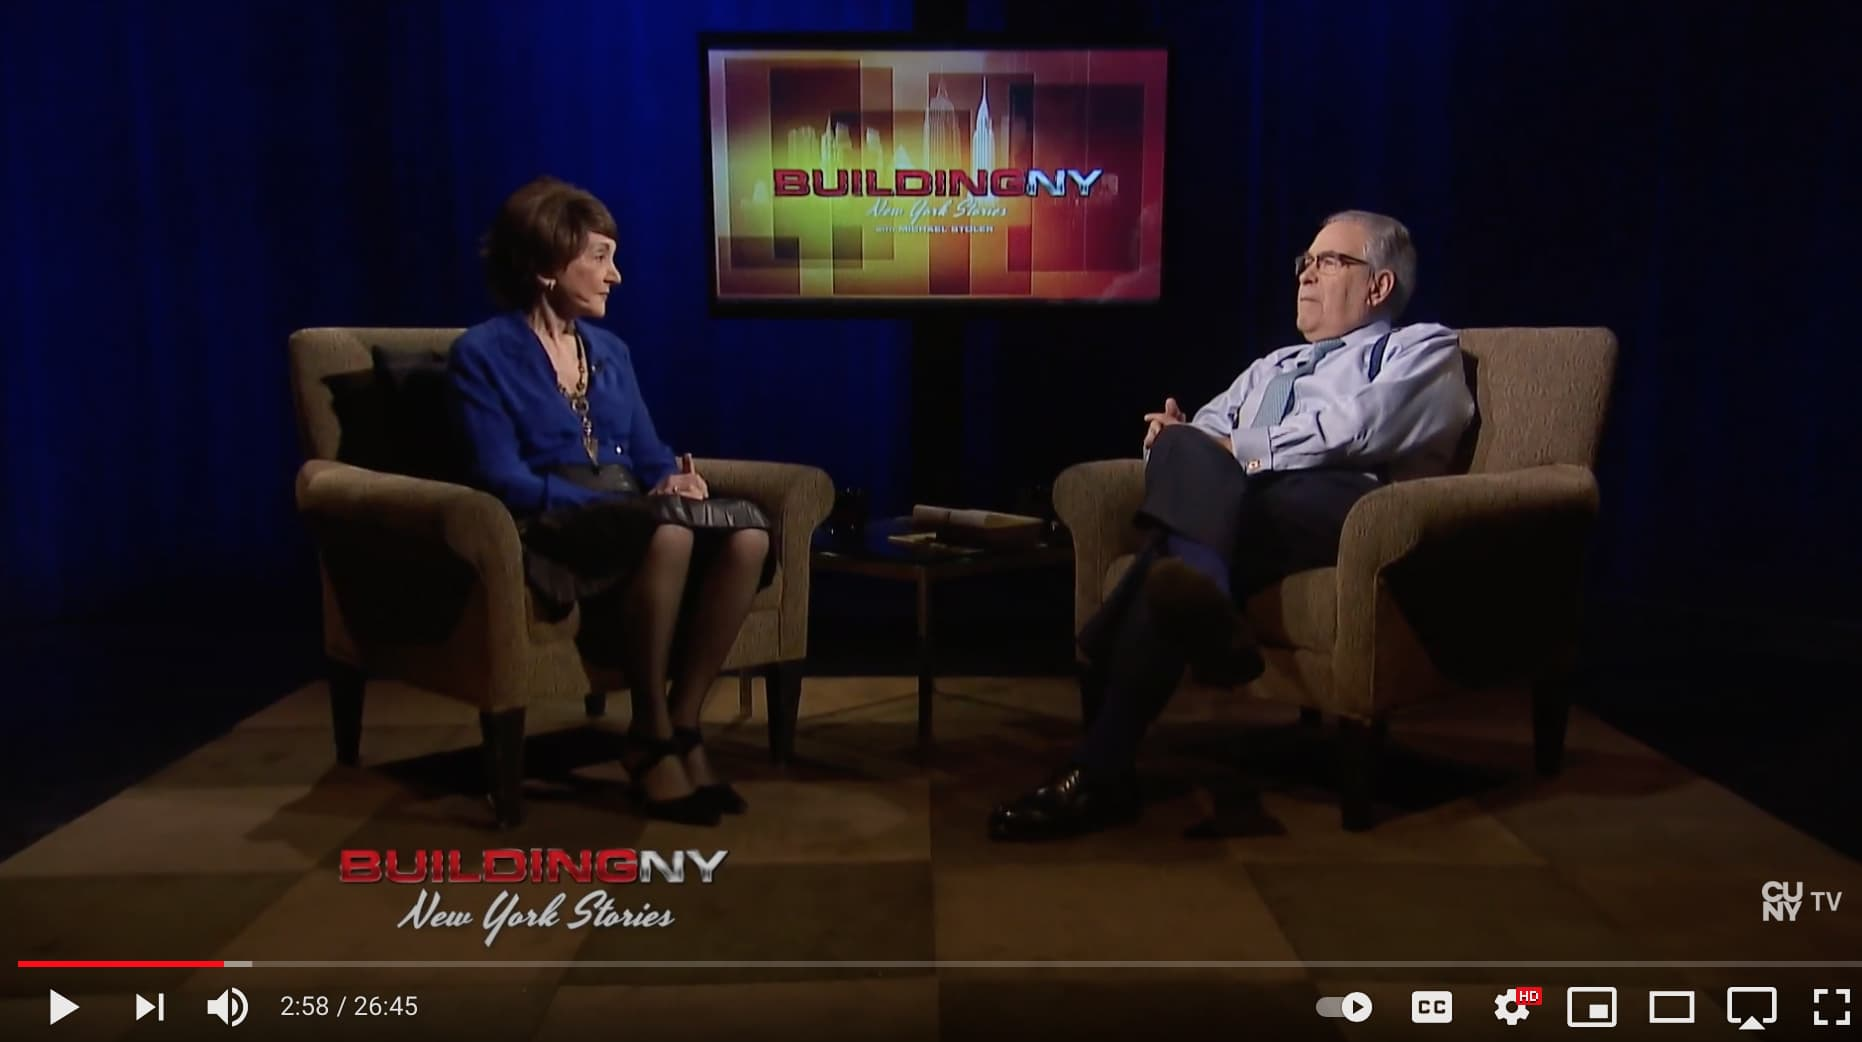 Building New York with Micheal Stoler.